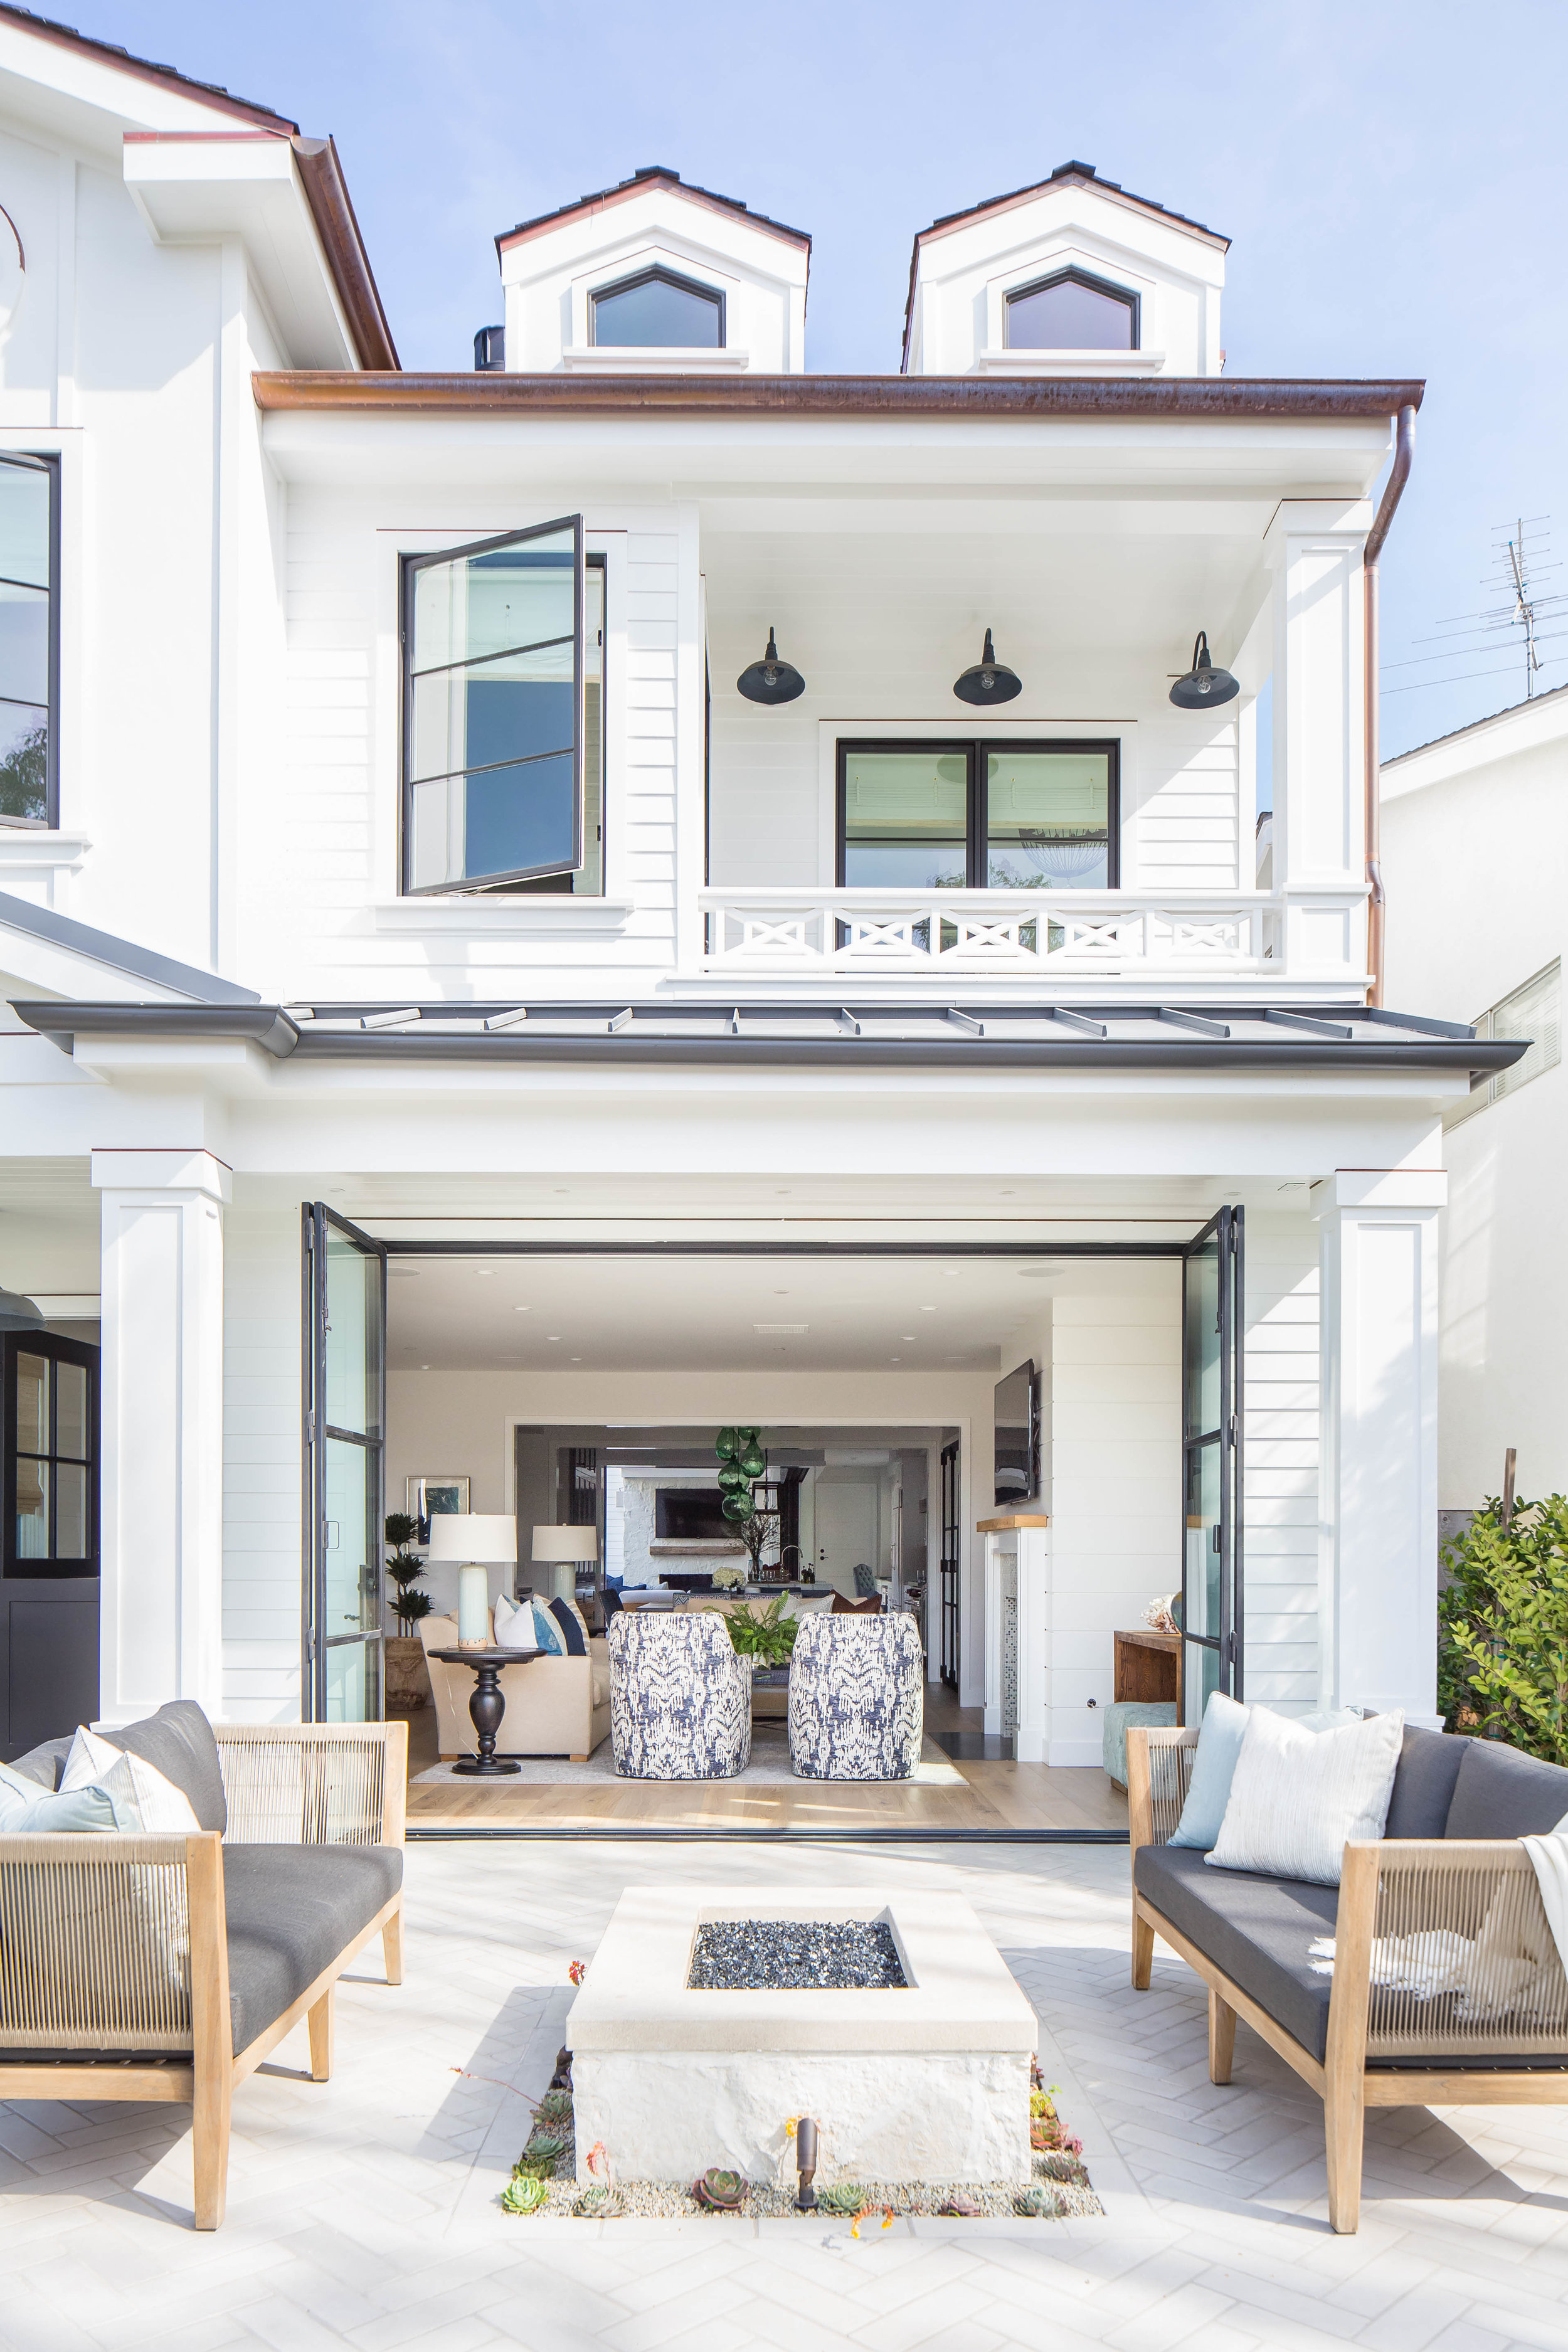 House Tour-This California Dream Home is Flawless 3.jpg